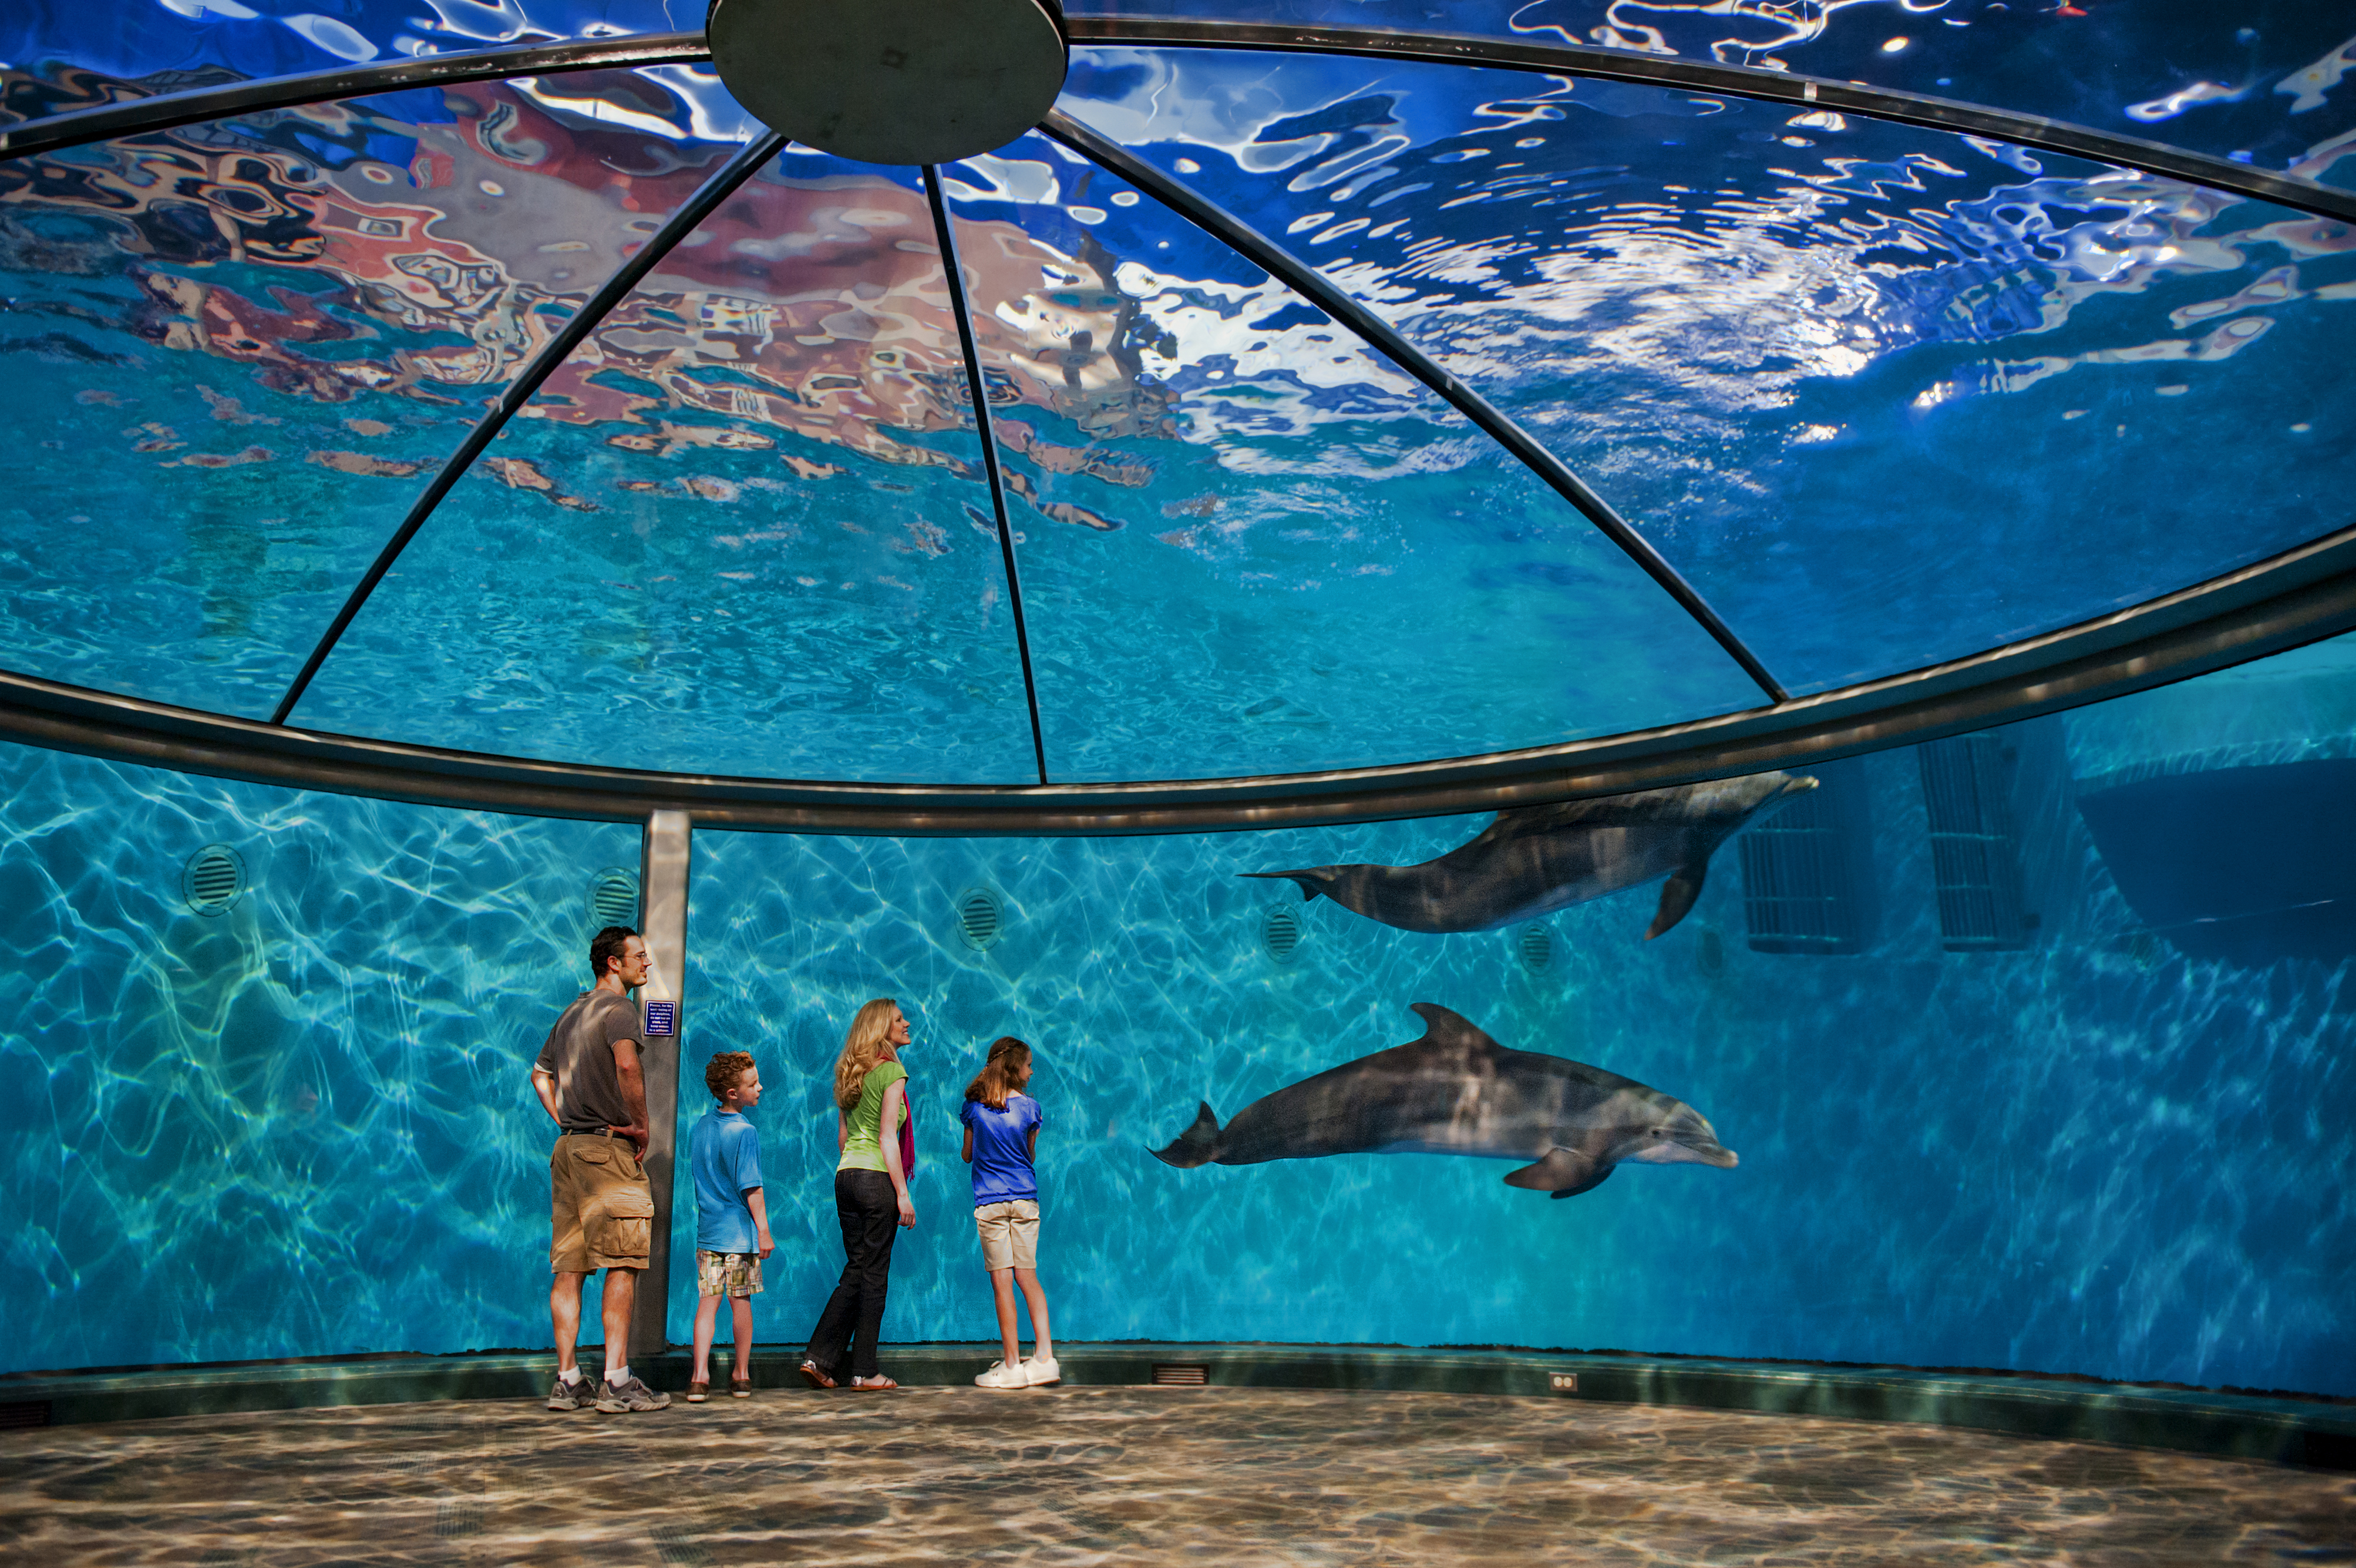 69805 download wallpaper Dolfins, Miscellanea, Miscellaneous, Indianapolis, Indianapolis Zoo screensavers and pictures for free